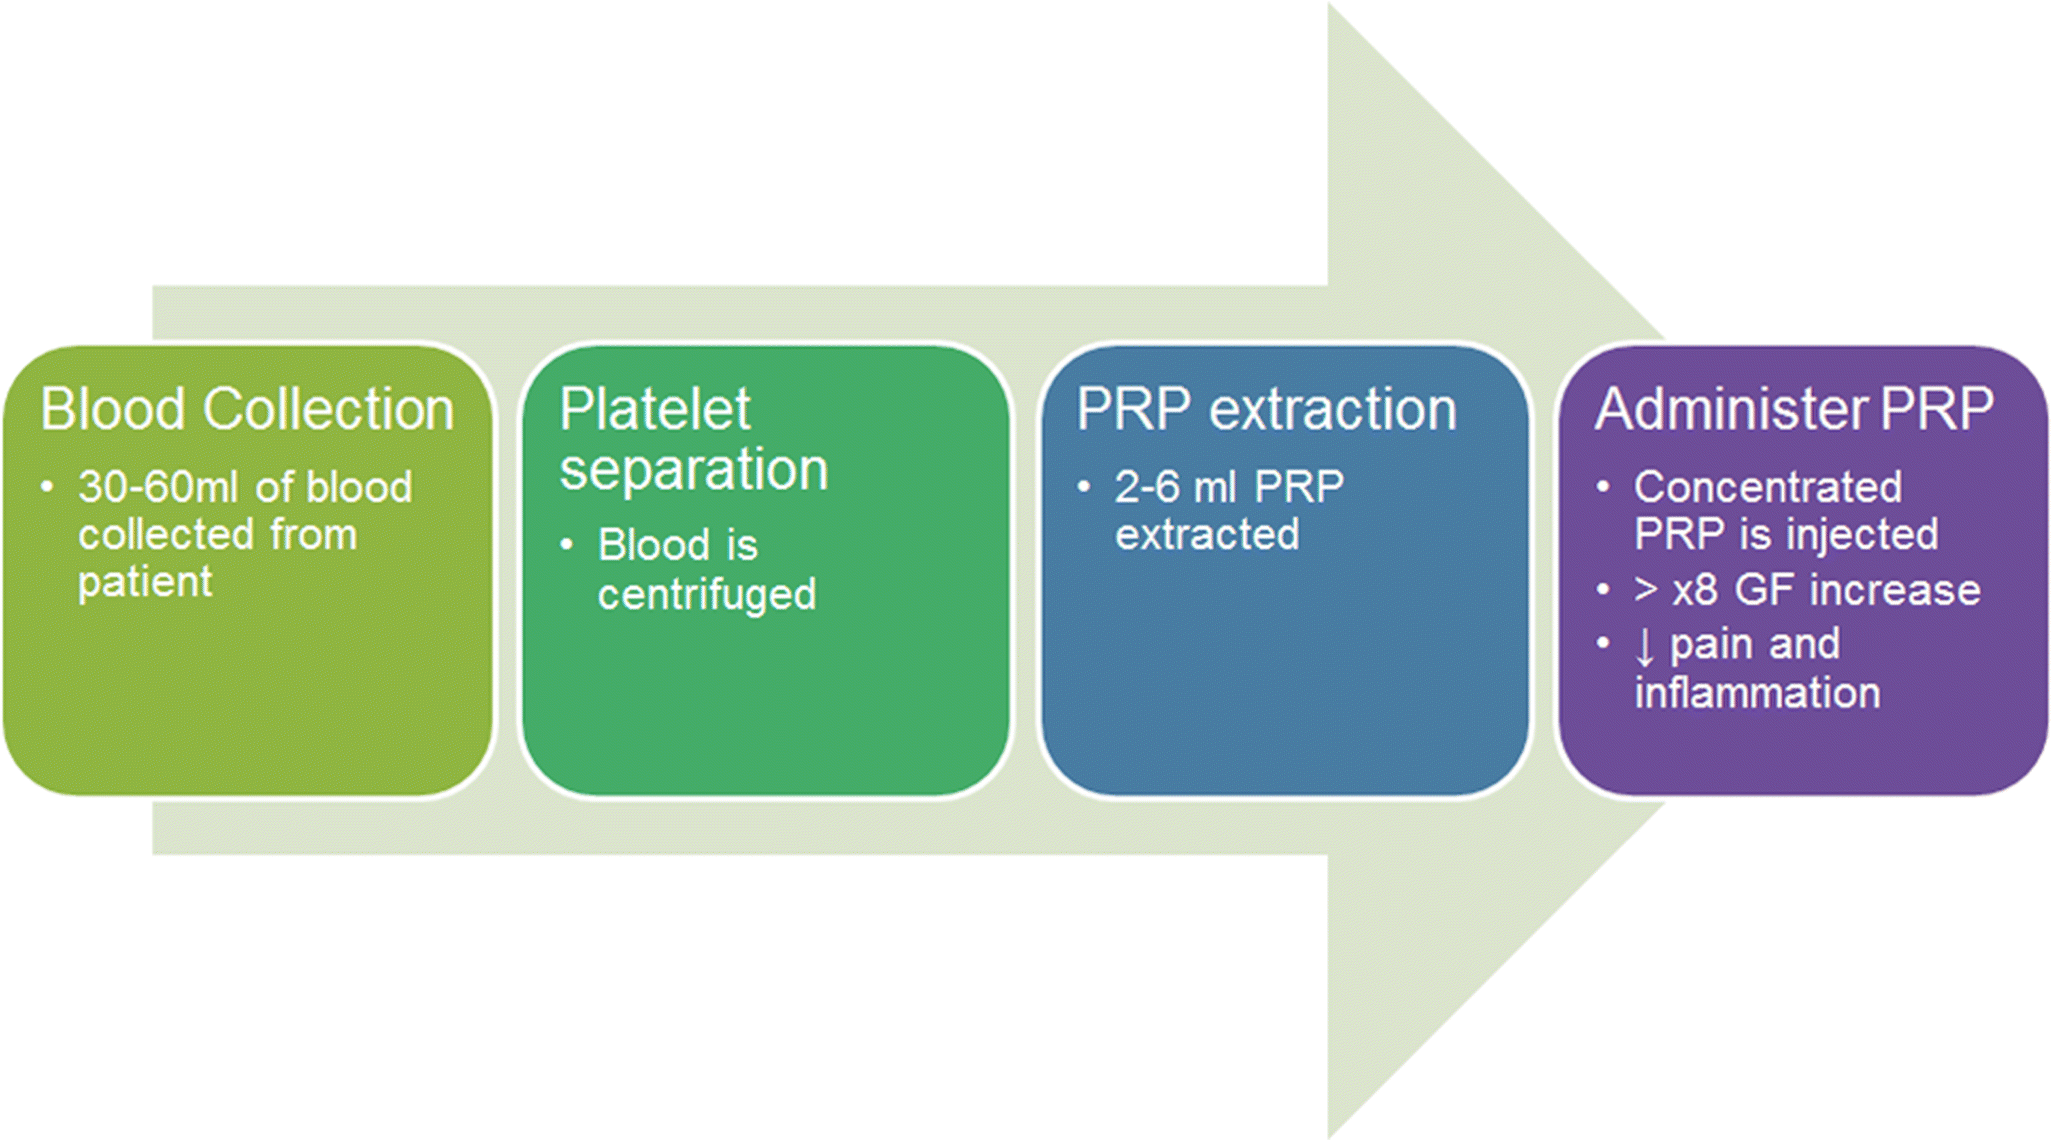 The use of PRP injections in the management of knee